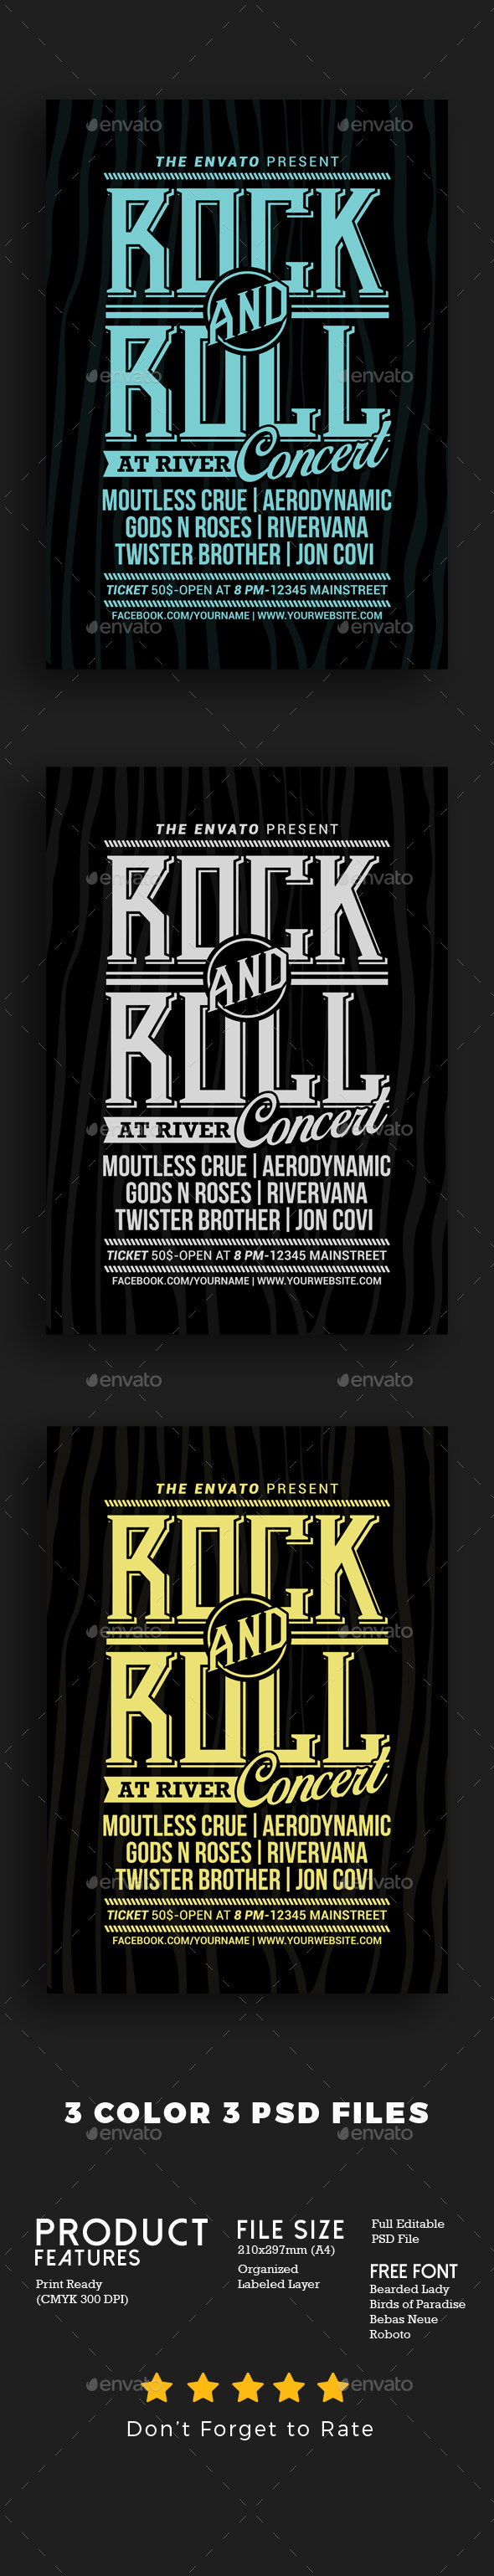 Rock and Roll Music Concert - Events Flyers